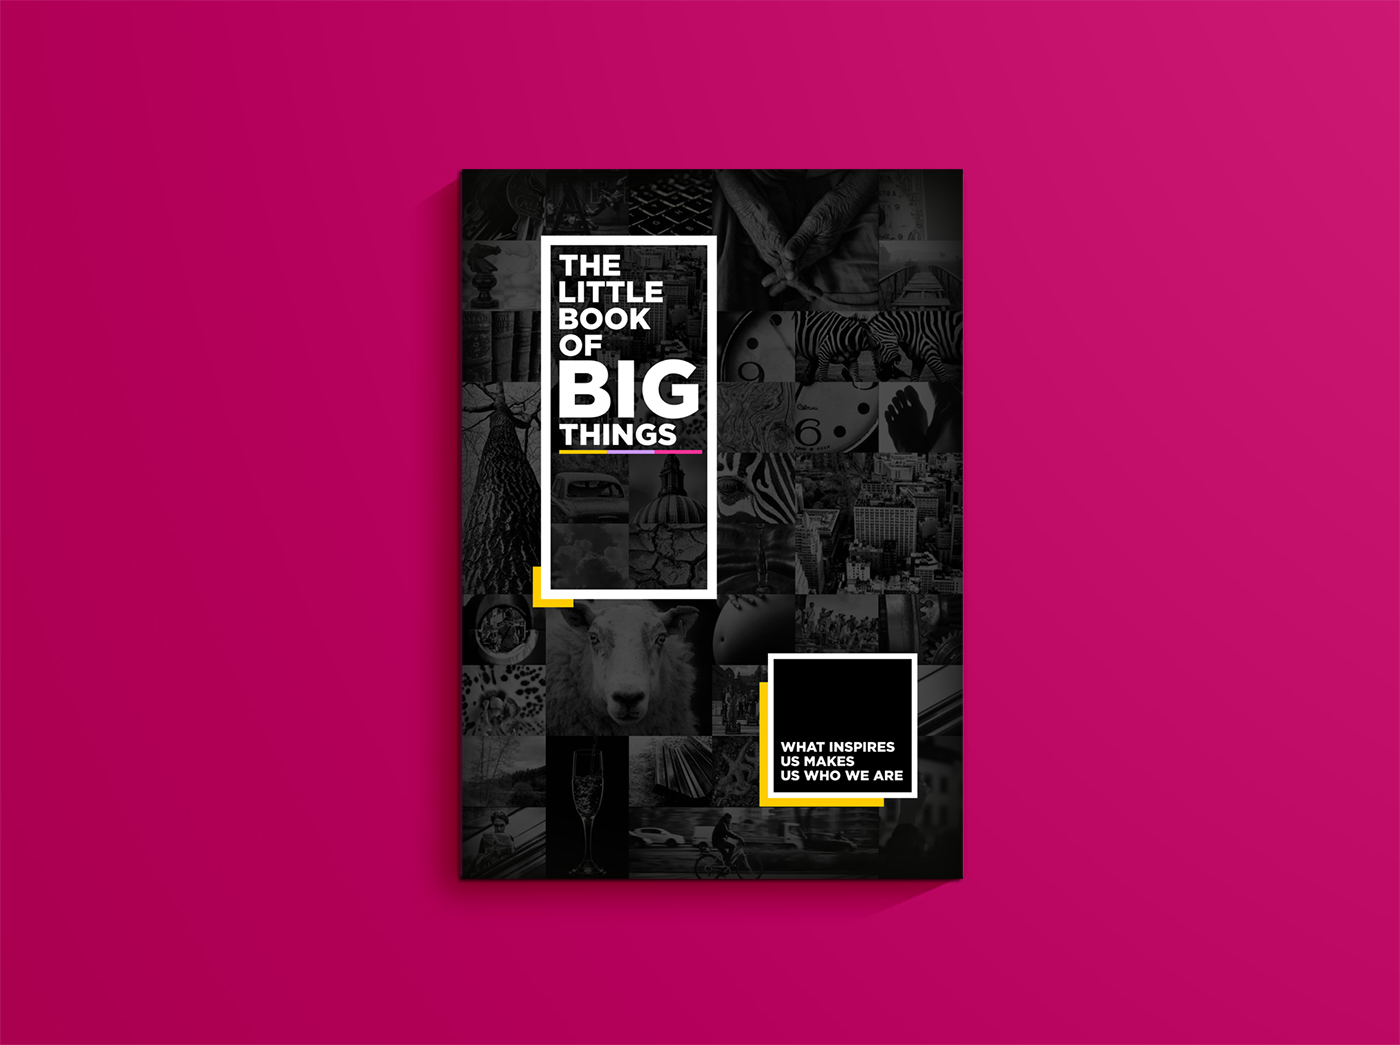 The Little Book of Big Things